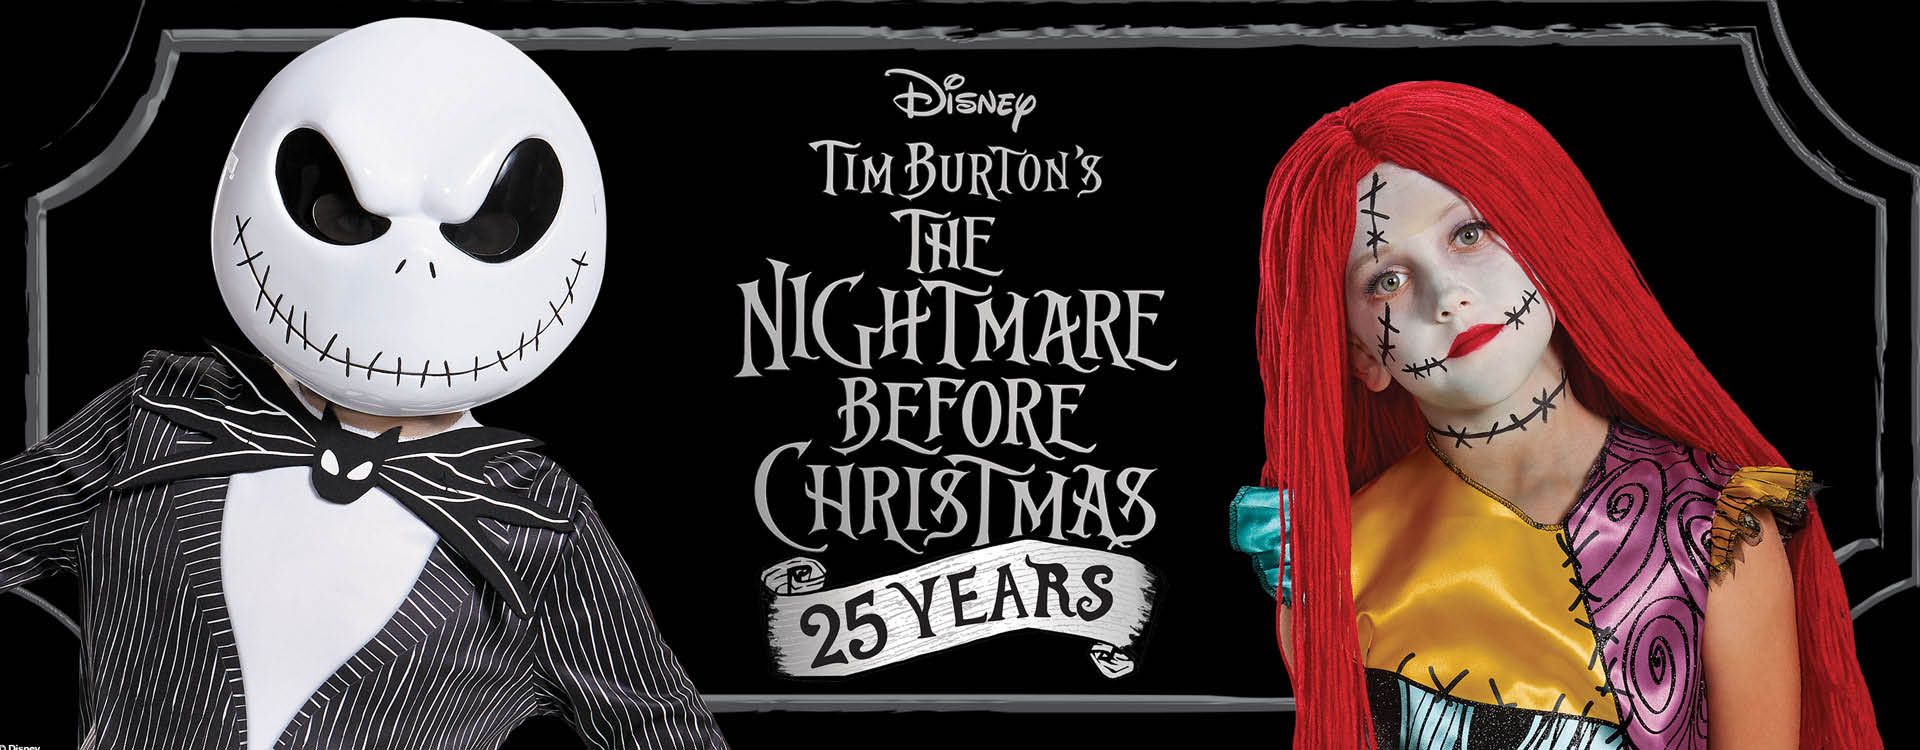 nightmare before christmas costumes near me jack skellington costume coupon halloween costume coupons